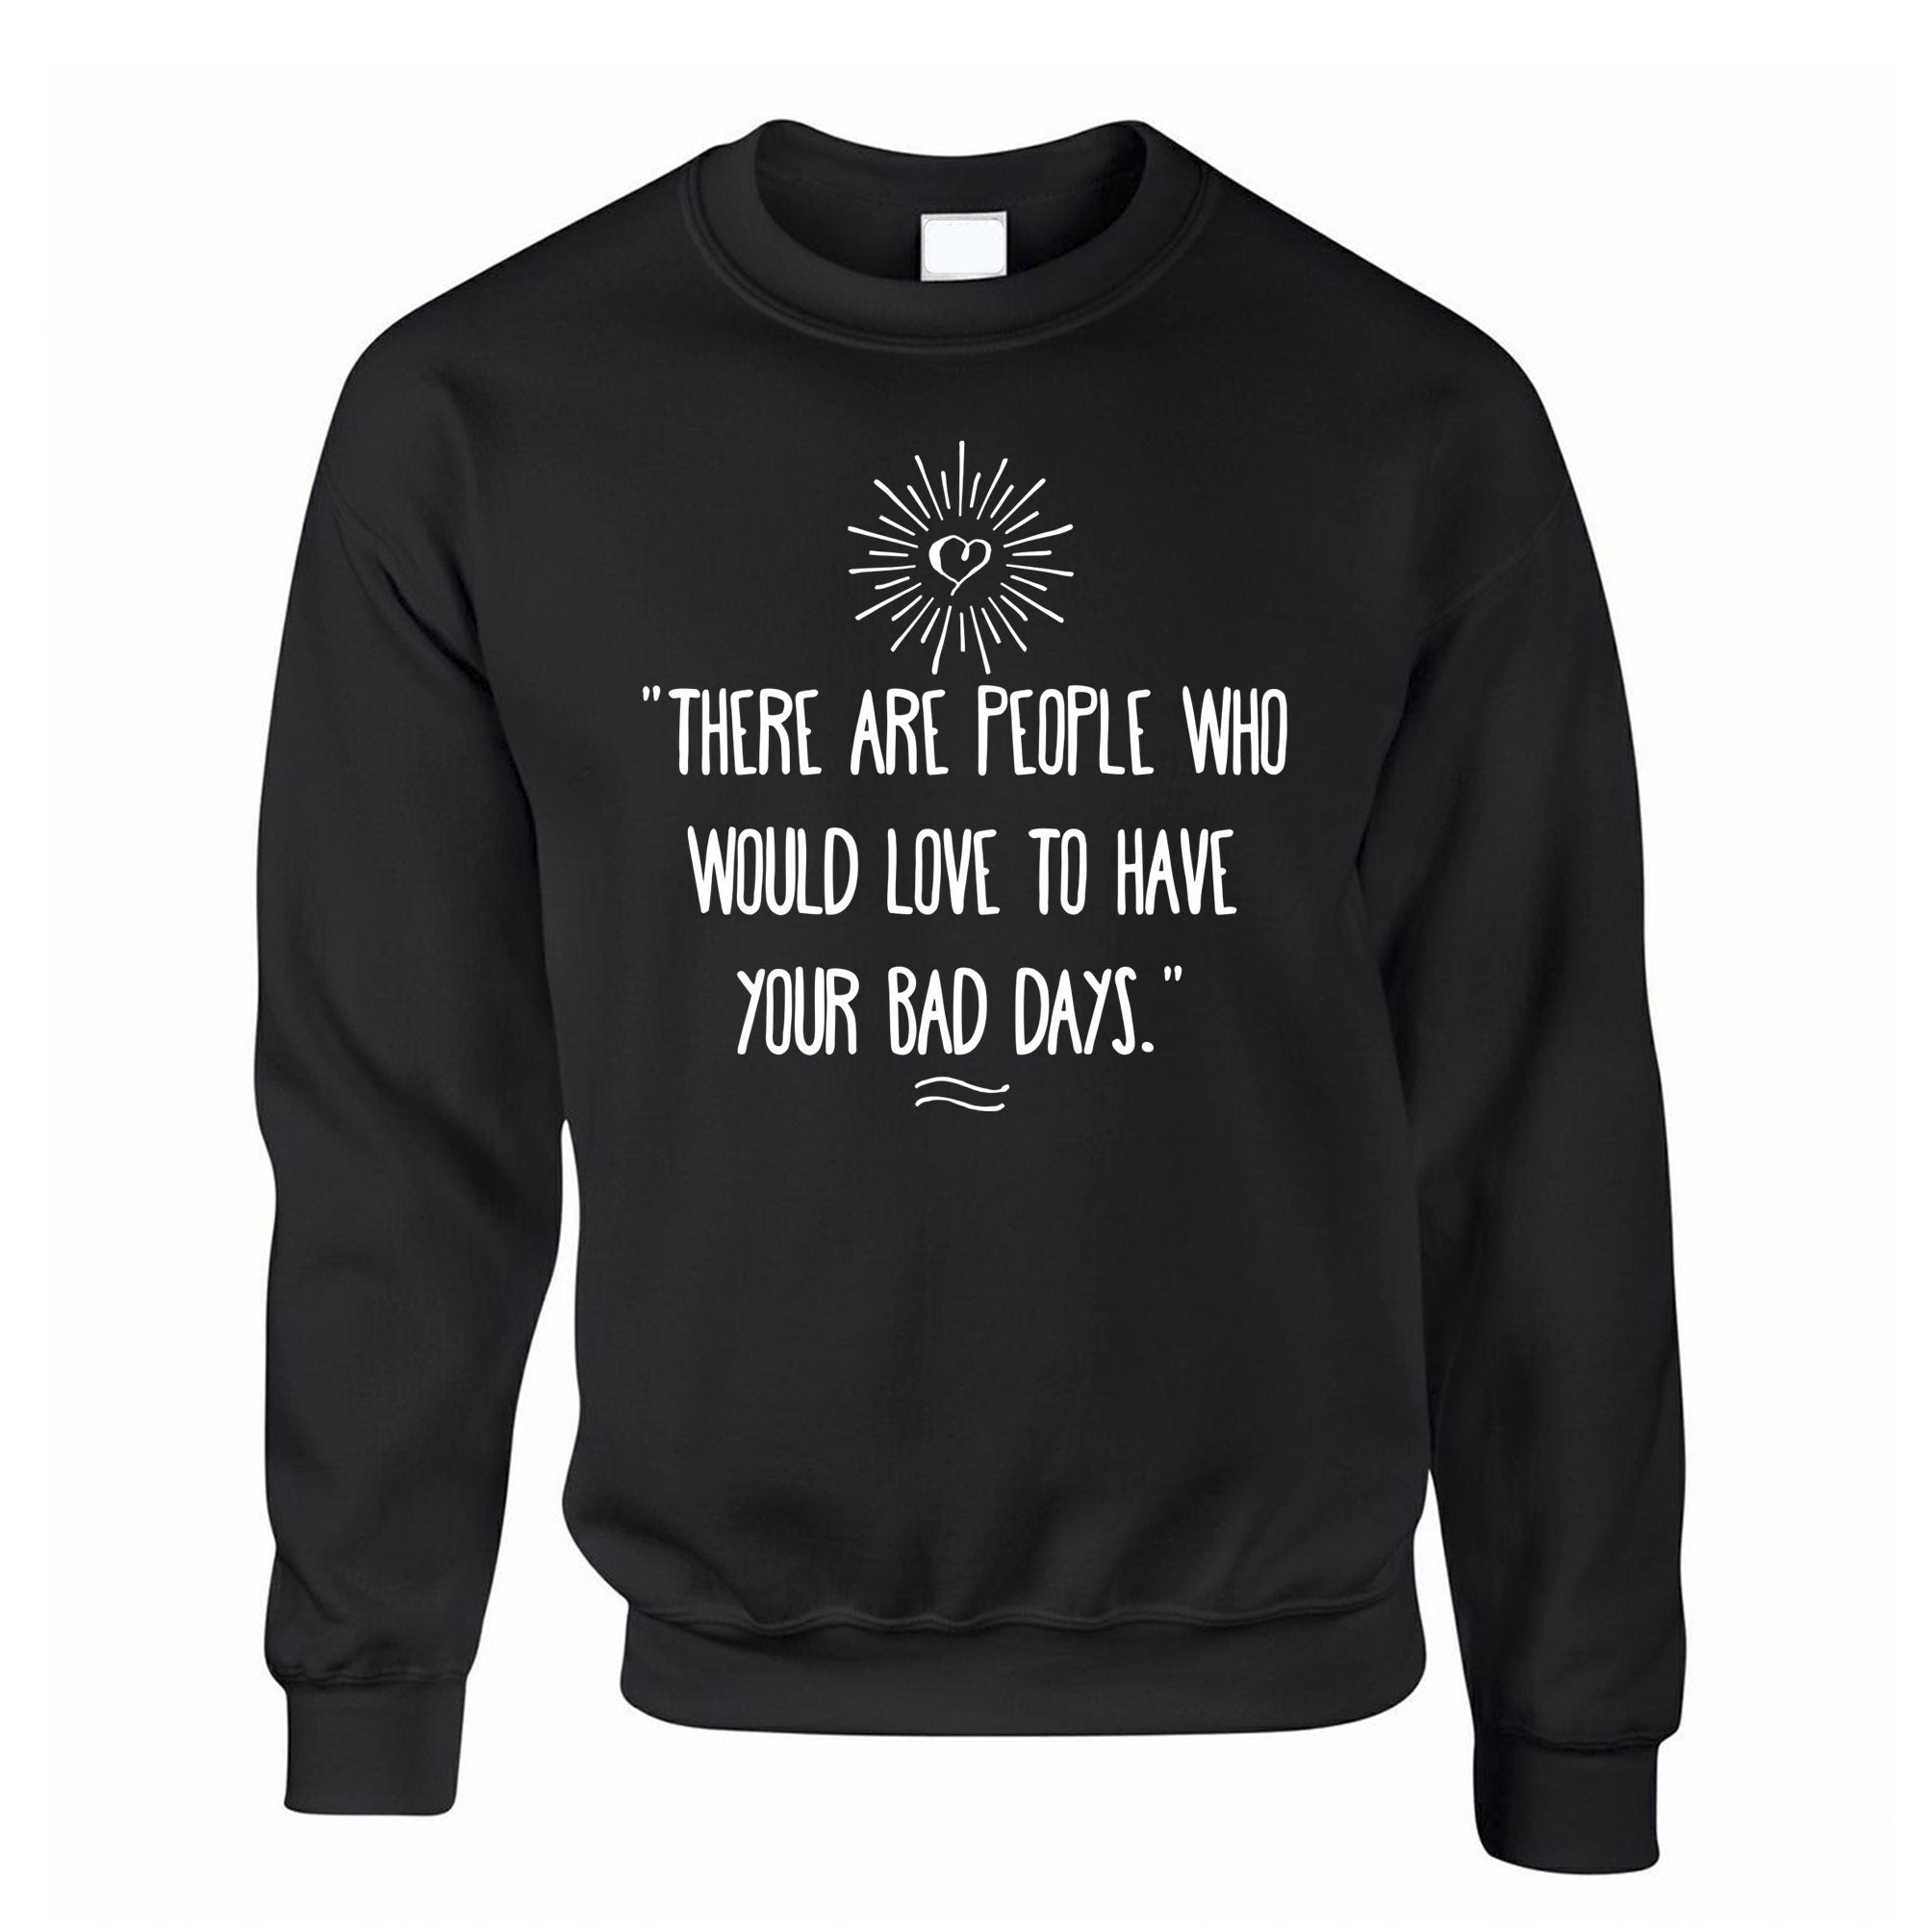 Slogan Jumper There's People Who'd Love Your Bad Days Sweatshirt